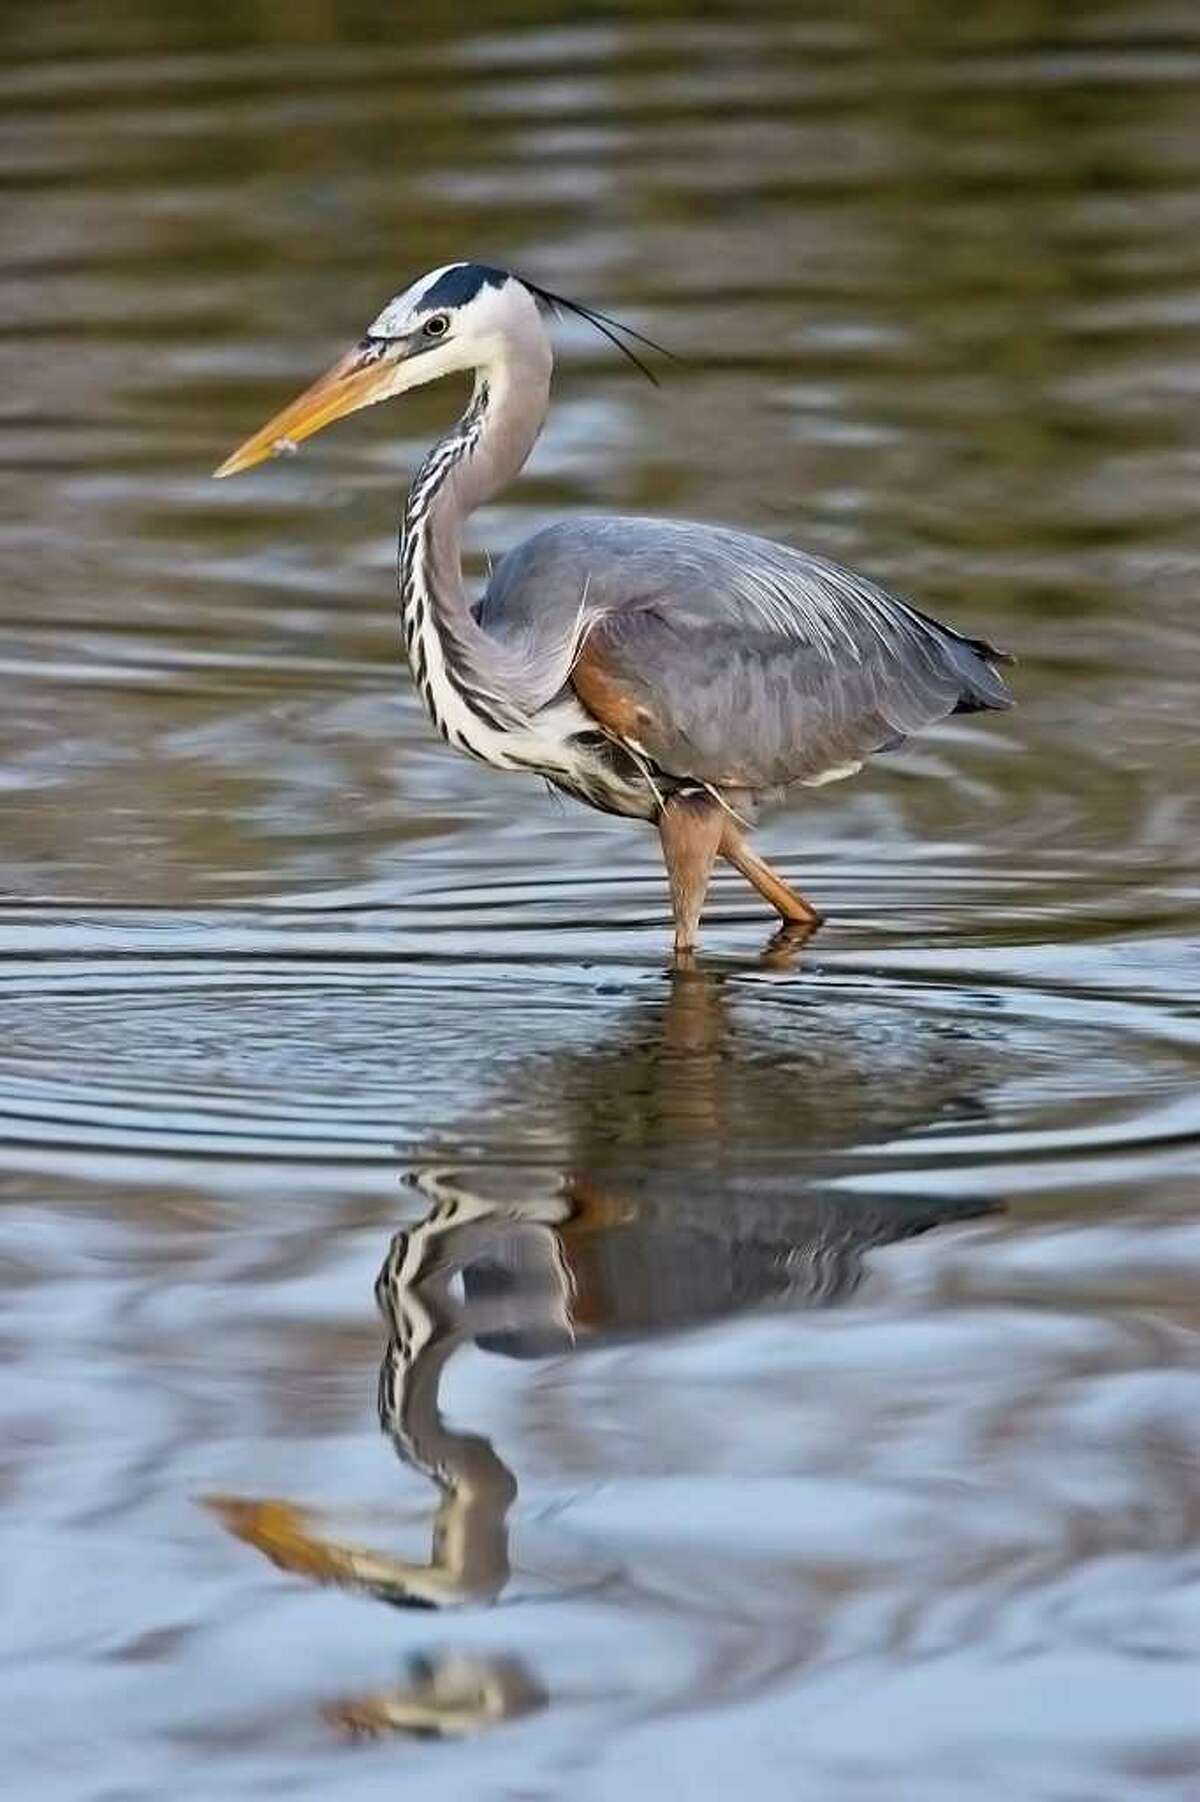 The Anahuac National Wildlife Refuge is a great place to see resident birds, like this great blue heron, as well as migratory birds. Photo Credit: Kathy Adams Clark. Restricted use.